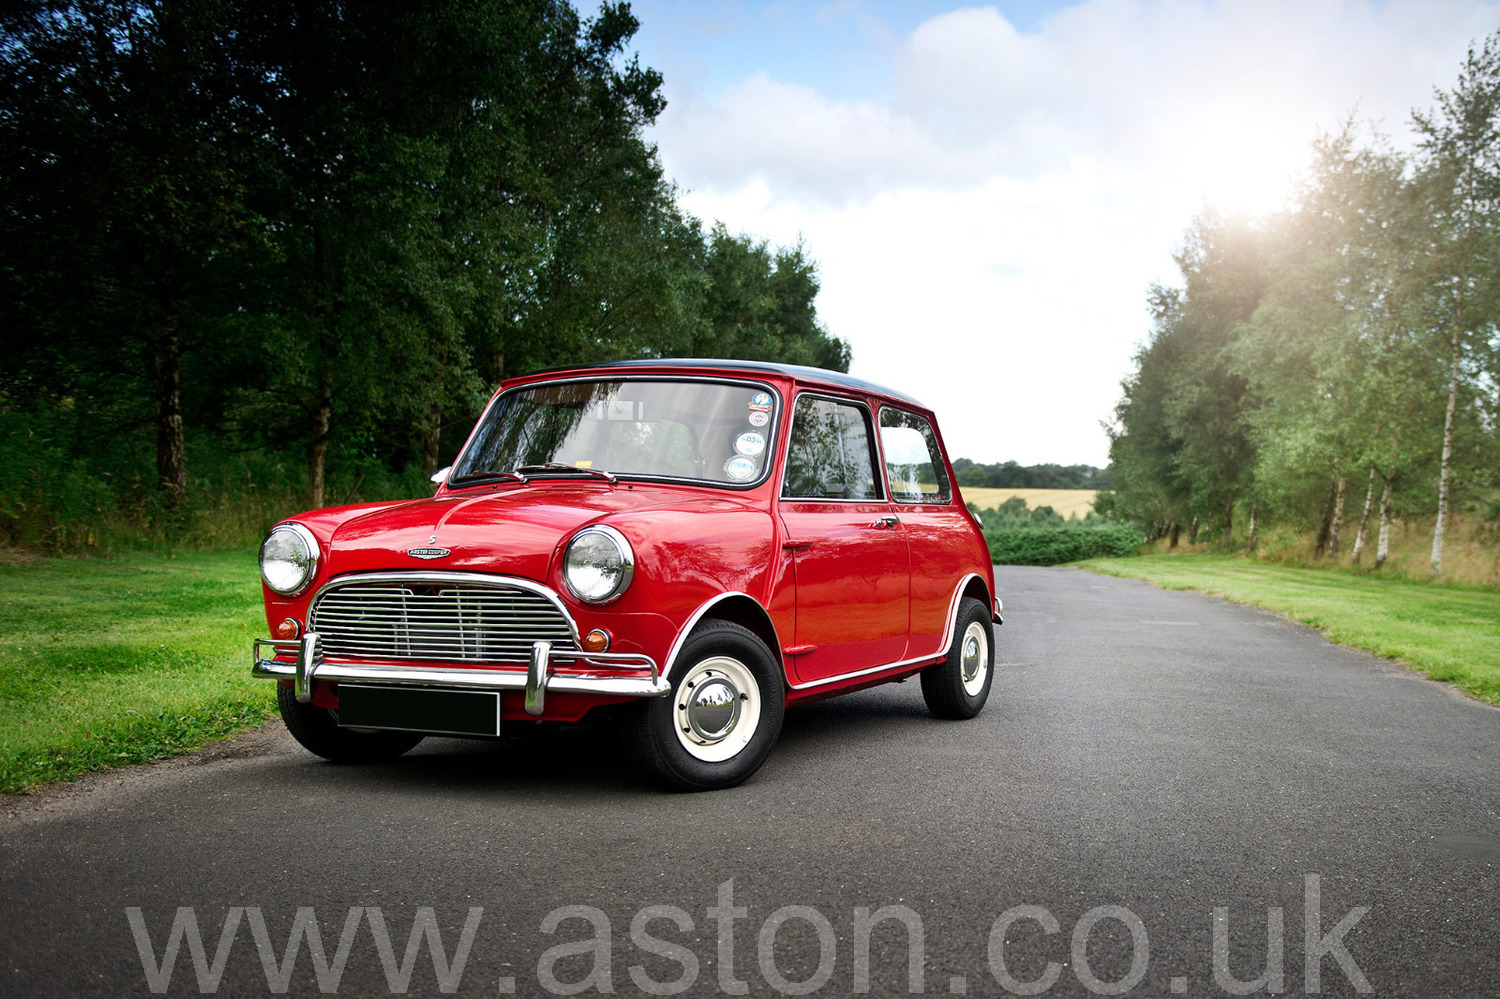 Mini Cooper Service Manual >> MK1 Mini Cooper S 1967 for sale from the Aston Workshop AW241016